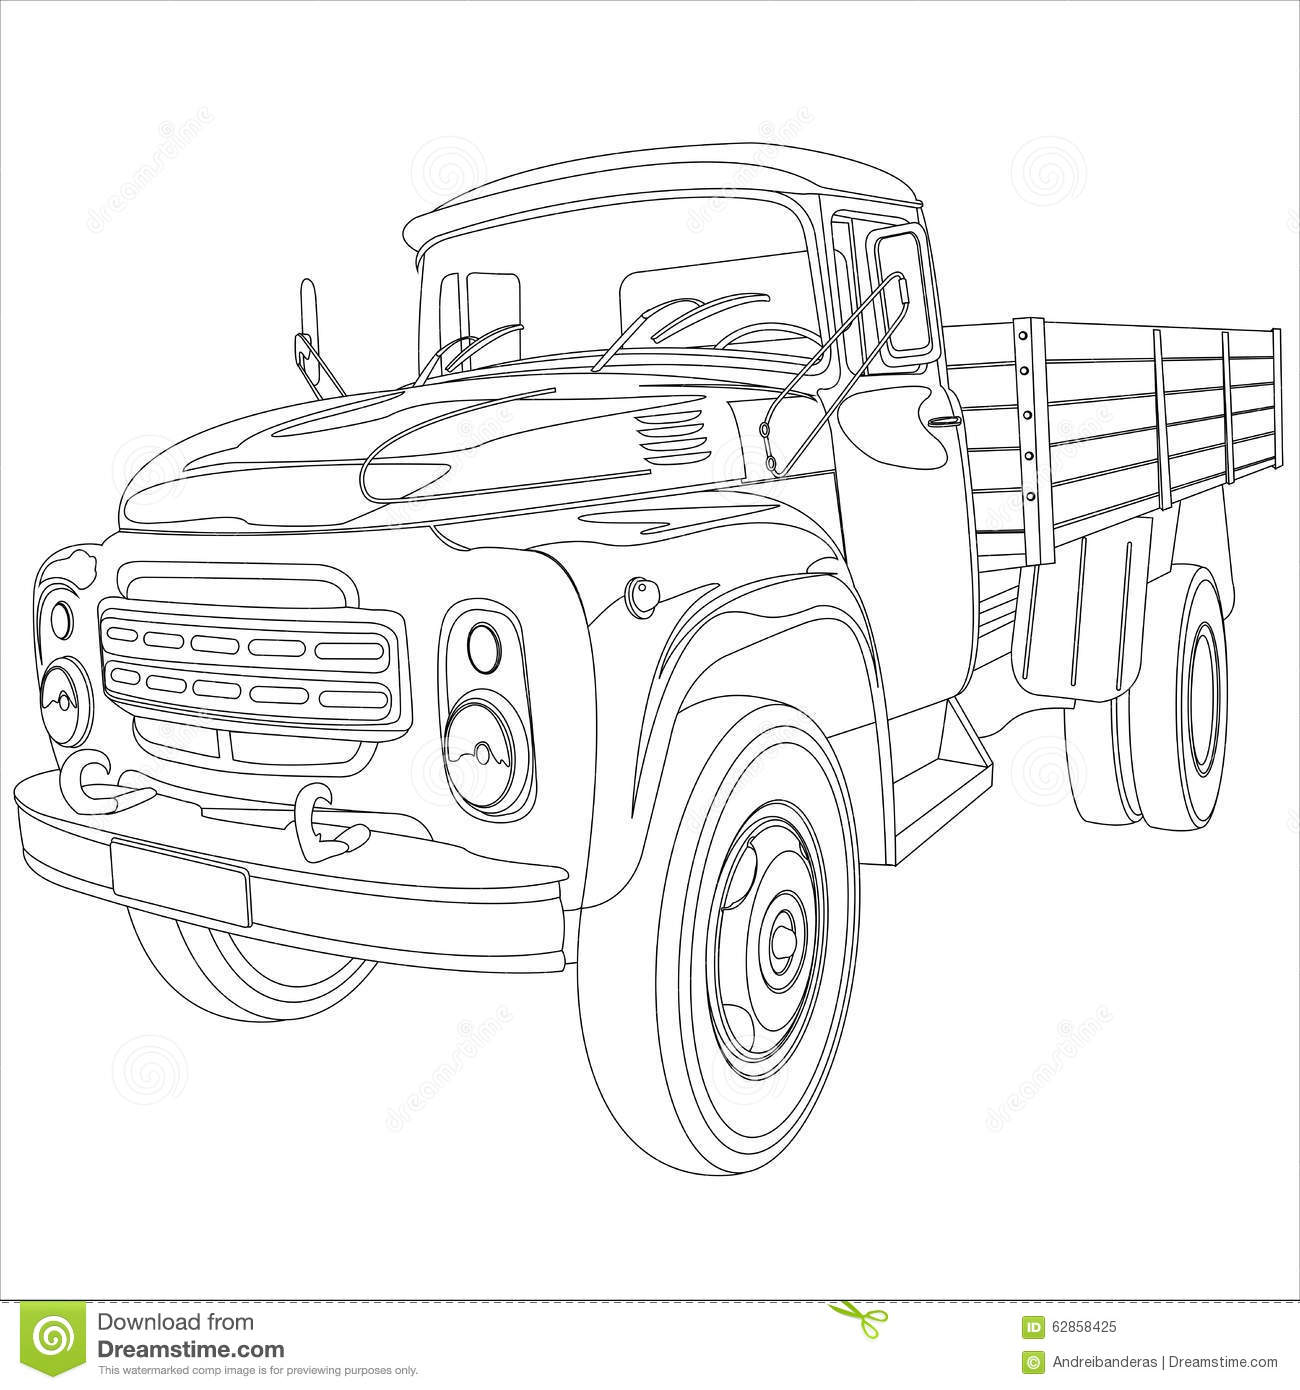 Old Flatbed Winch Trucks | Wiring Diagram Database on ford truck diagrams, truck repair diagrams, truck chassis diagrams, chevy truck diagrams, truck schematics, truck engine diagrams, truck blueprints, truck suspension, truck battery diagrams, truck frame diagrams, truck rear axle, truck exhaust, truck safety diagrams, truck ignition diagrams, truck wheels and tires, dodge truck electrical diagrams,